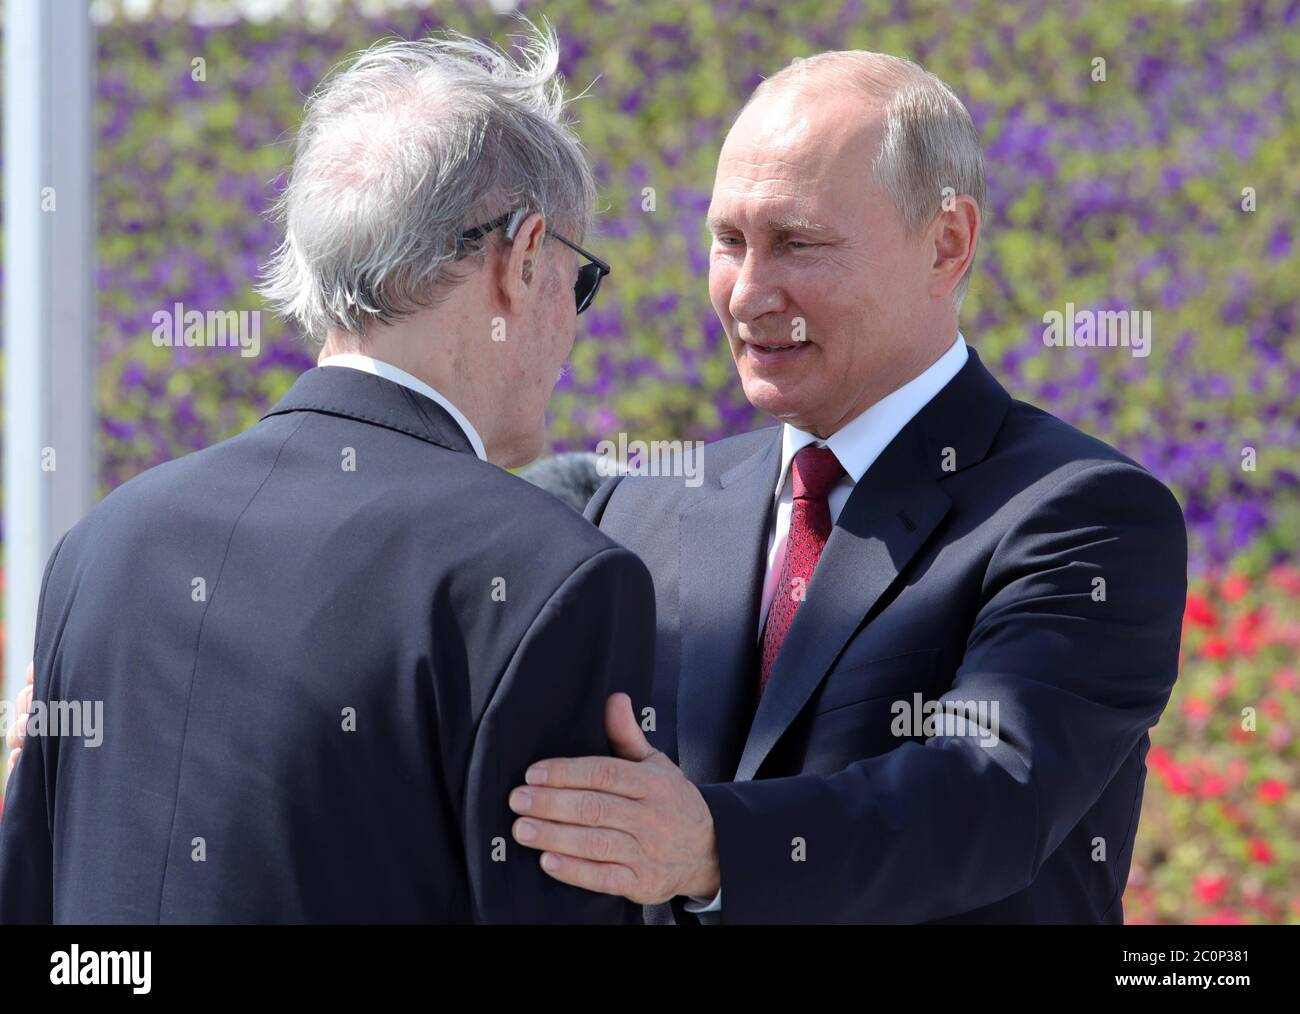 Russian President Vladimir Putin Artistic High Resolution Stock Photography And Images Alamy